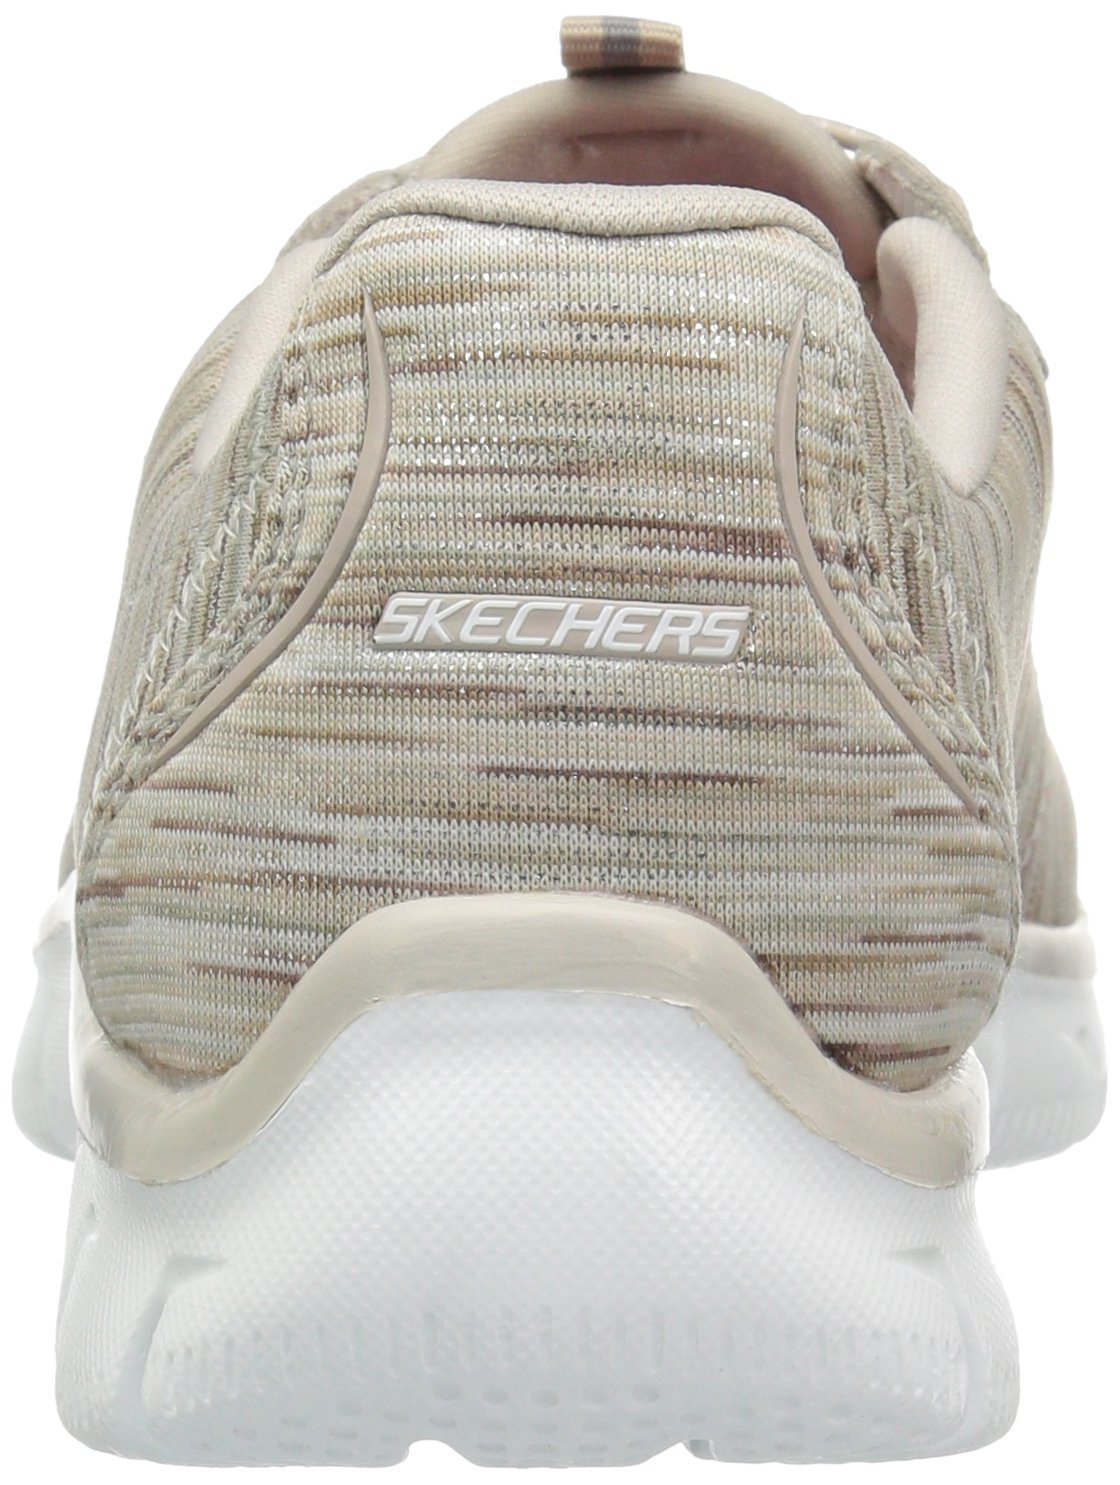 Skechers Women's Empire Game On Memory Foam Sneakers Shoes, Taupe, 6 B(M) US by Skechers (Image #2)